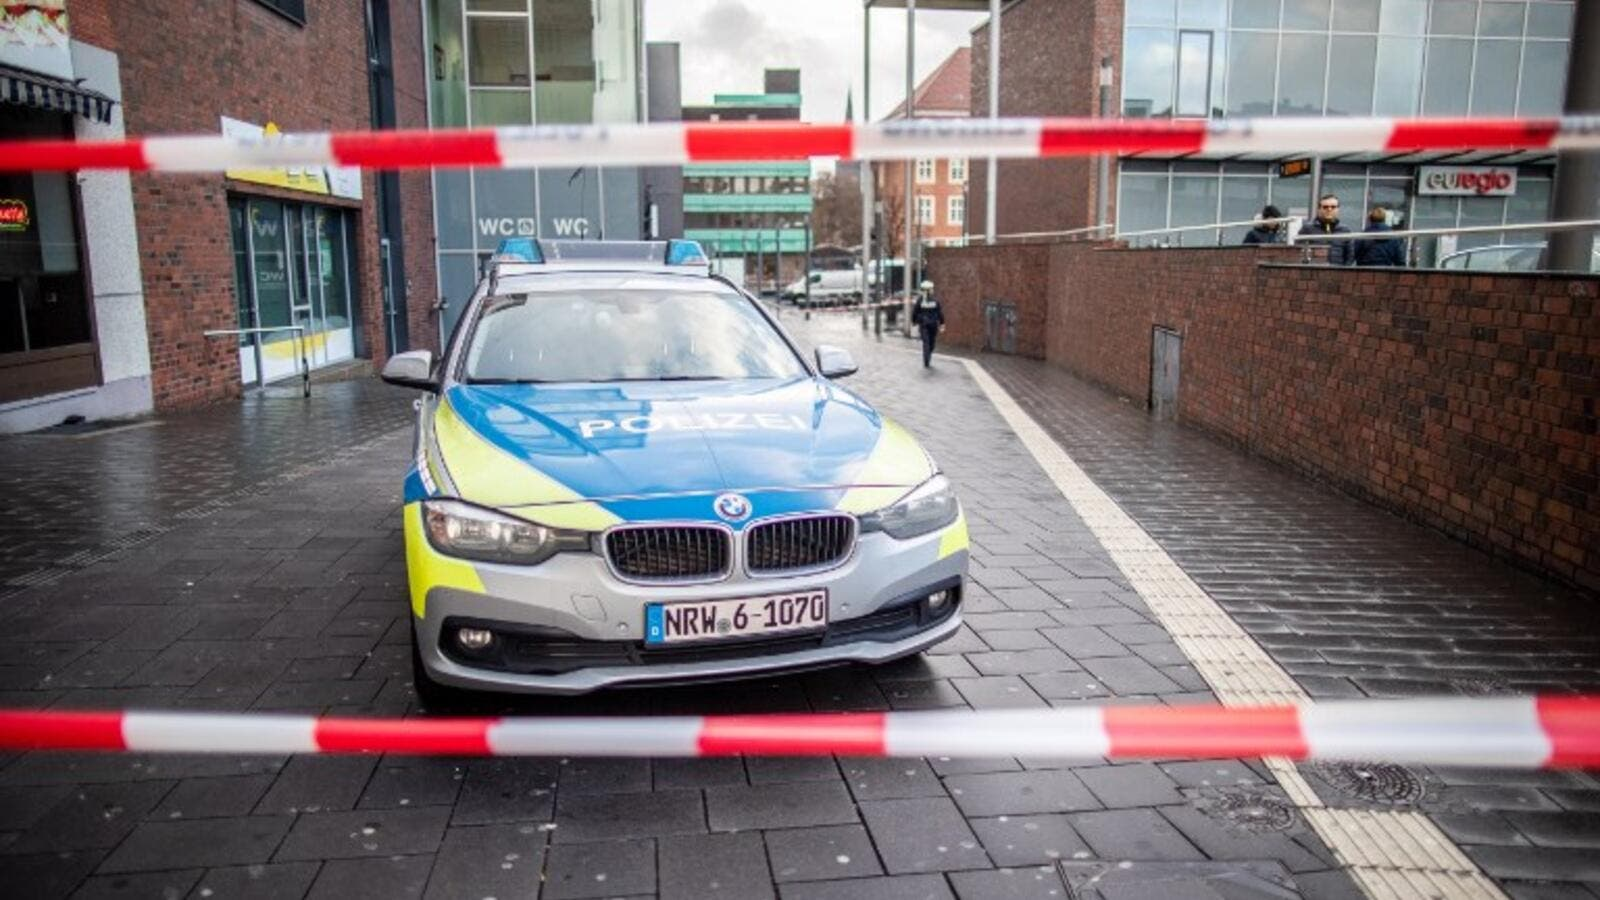 A police car in a cordoned off area at the site where a man injured four people after driving into a group celebrating the new year, in what police described as an anti-migrant attack. (AFP)